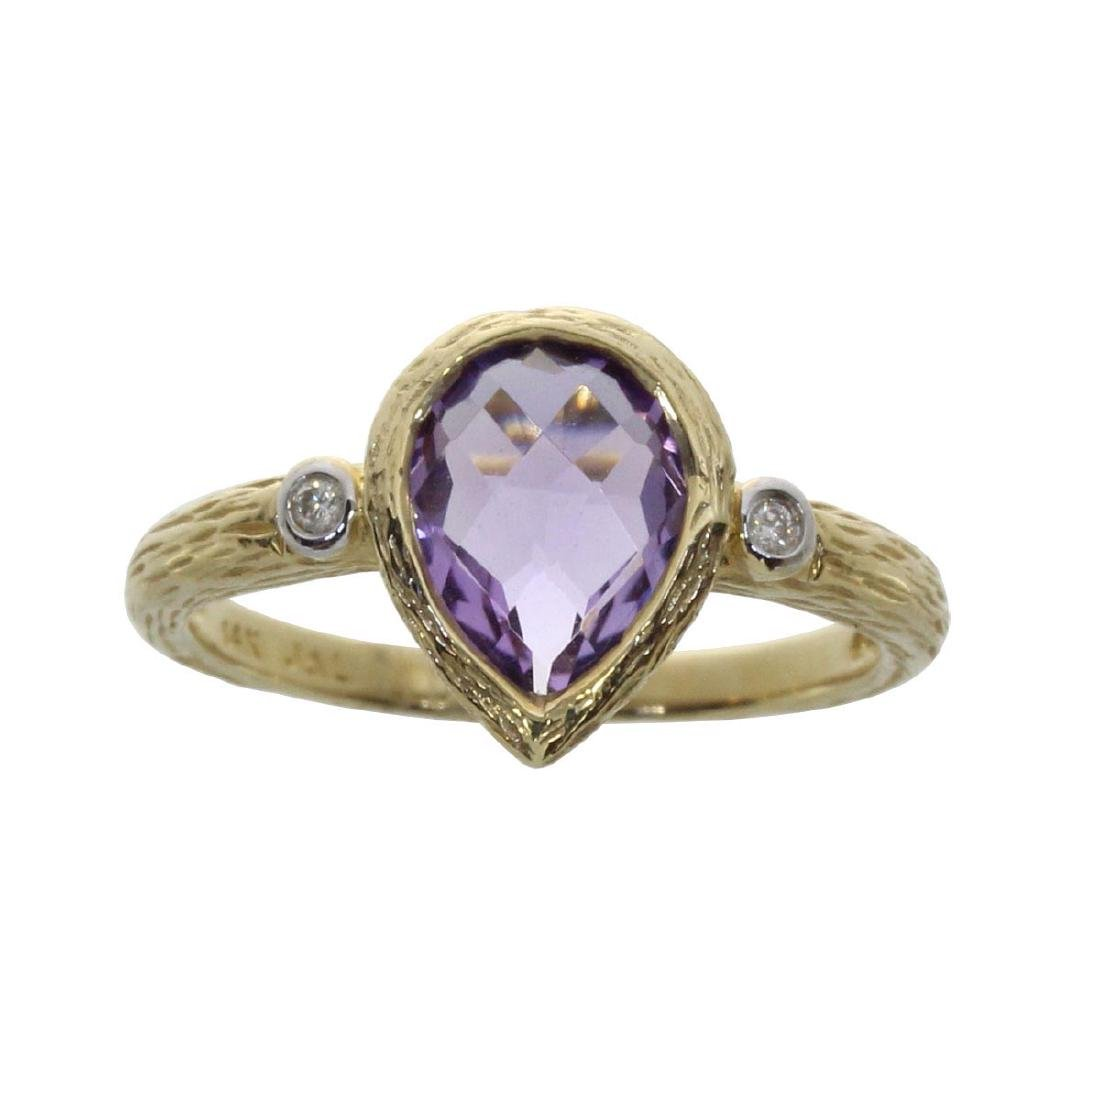 Certified 14k Yellow Gold Pear Shaped Amethyst and Diam